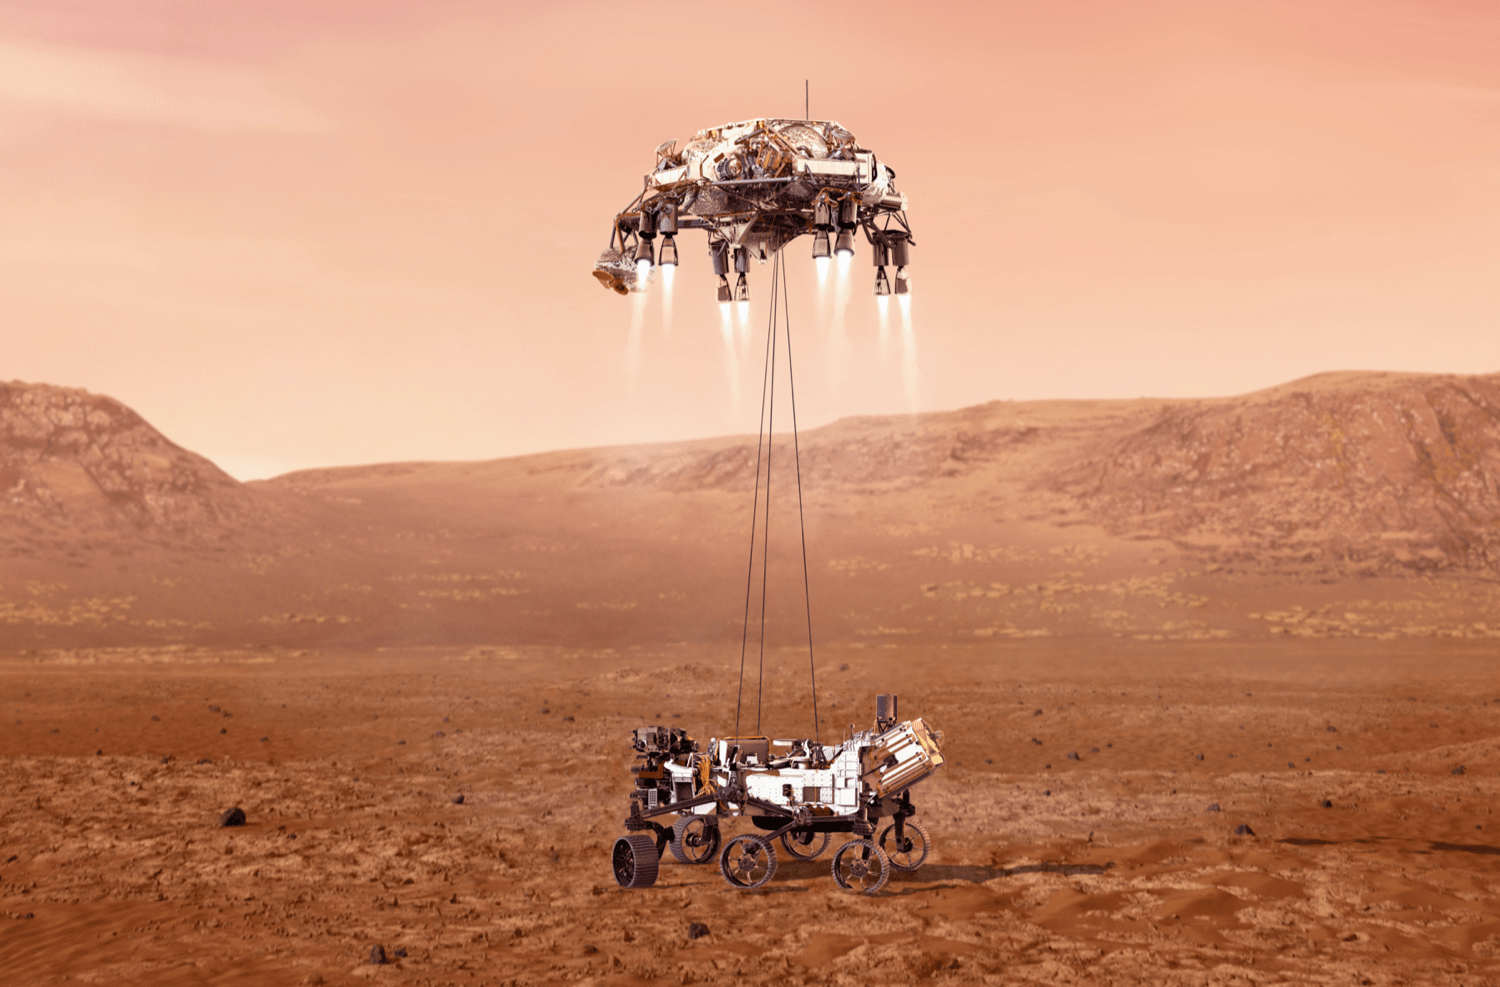 a computer generated image of the new mars rover landing on mars, being lowered down on wires by a rocket powered platform